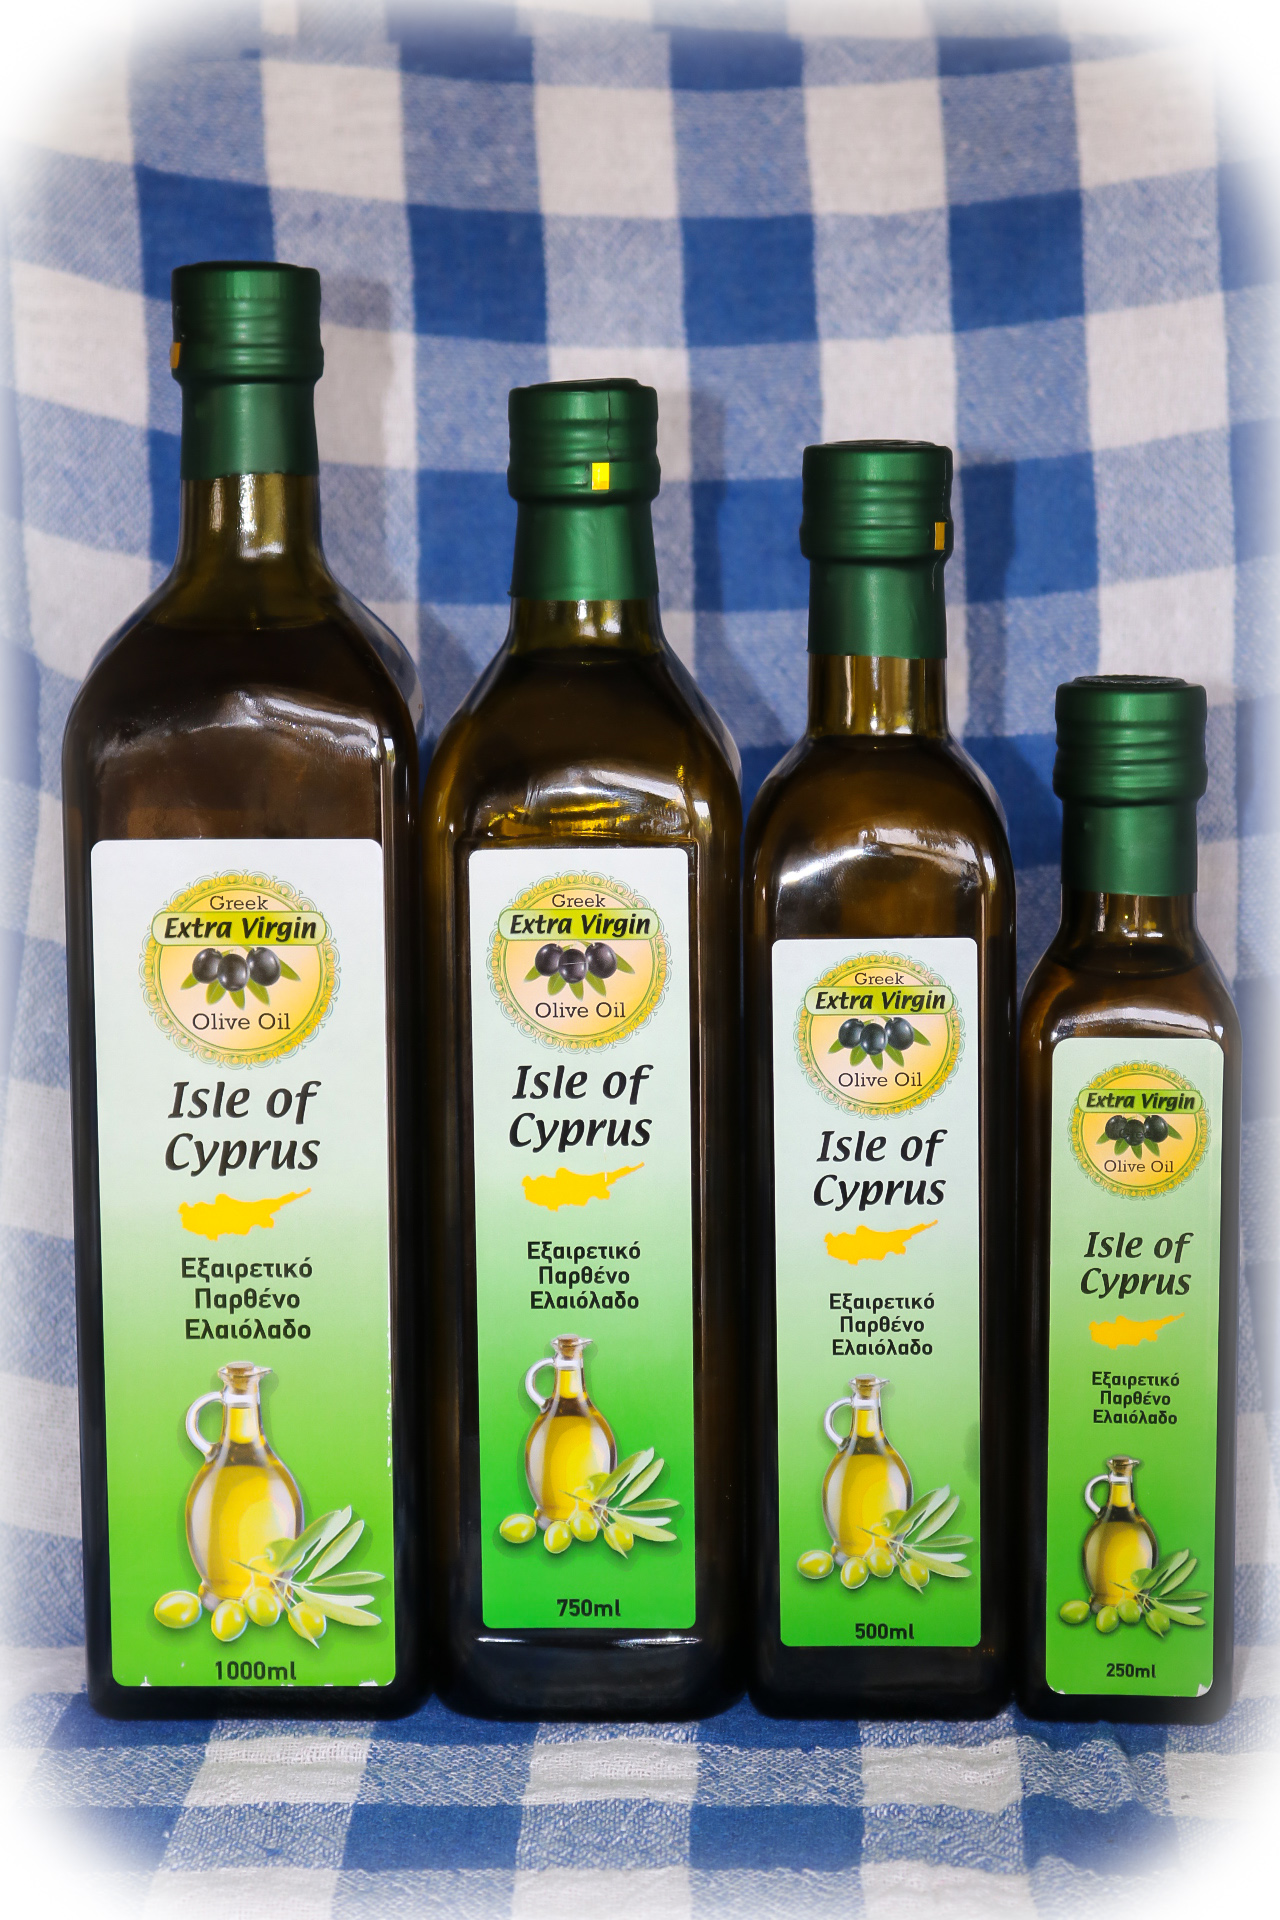 ISLE OF CYPRUS EXTRA VIRGIN OLIVE OIL:  sealed bottles of 1L, 750 ml, 500 ml, 250 ml